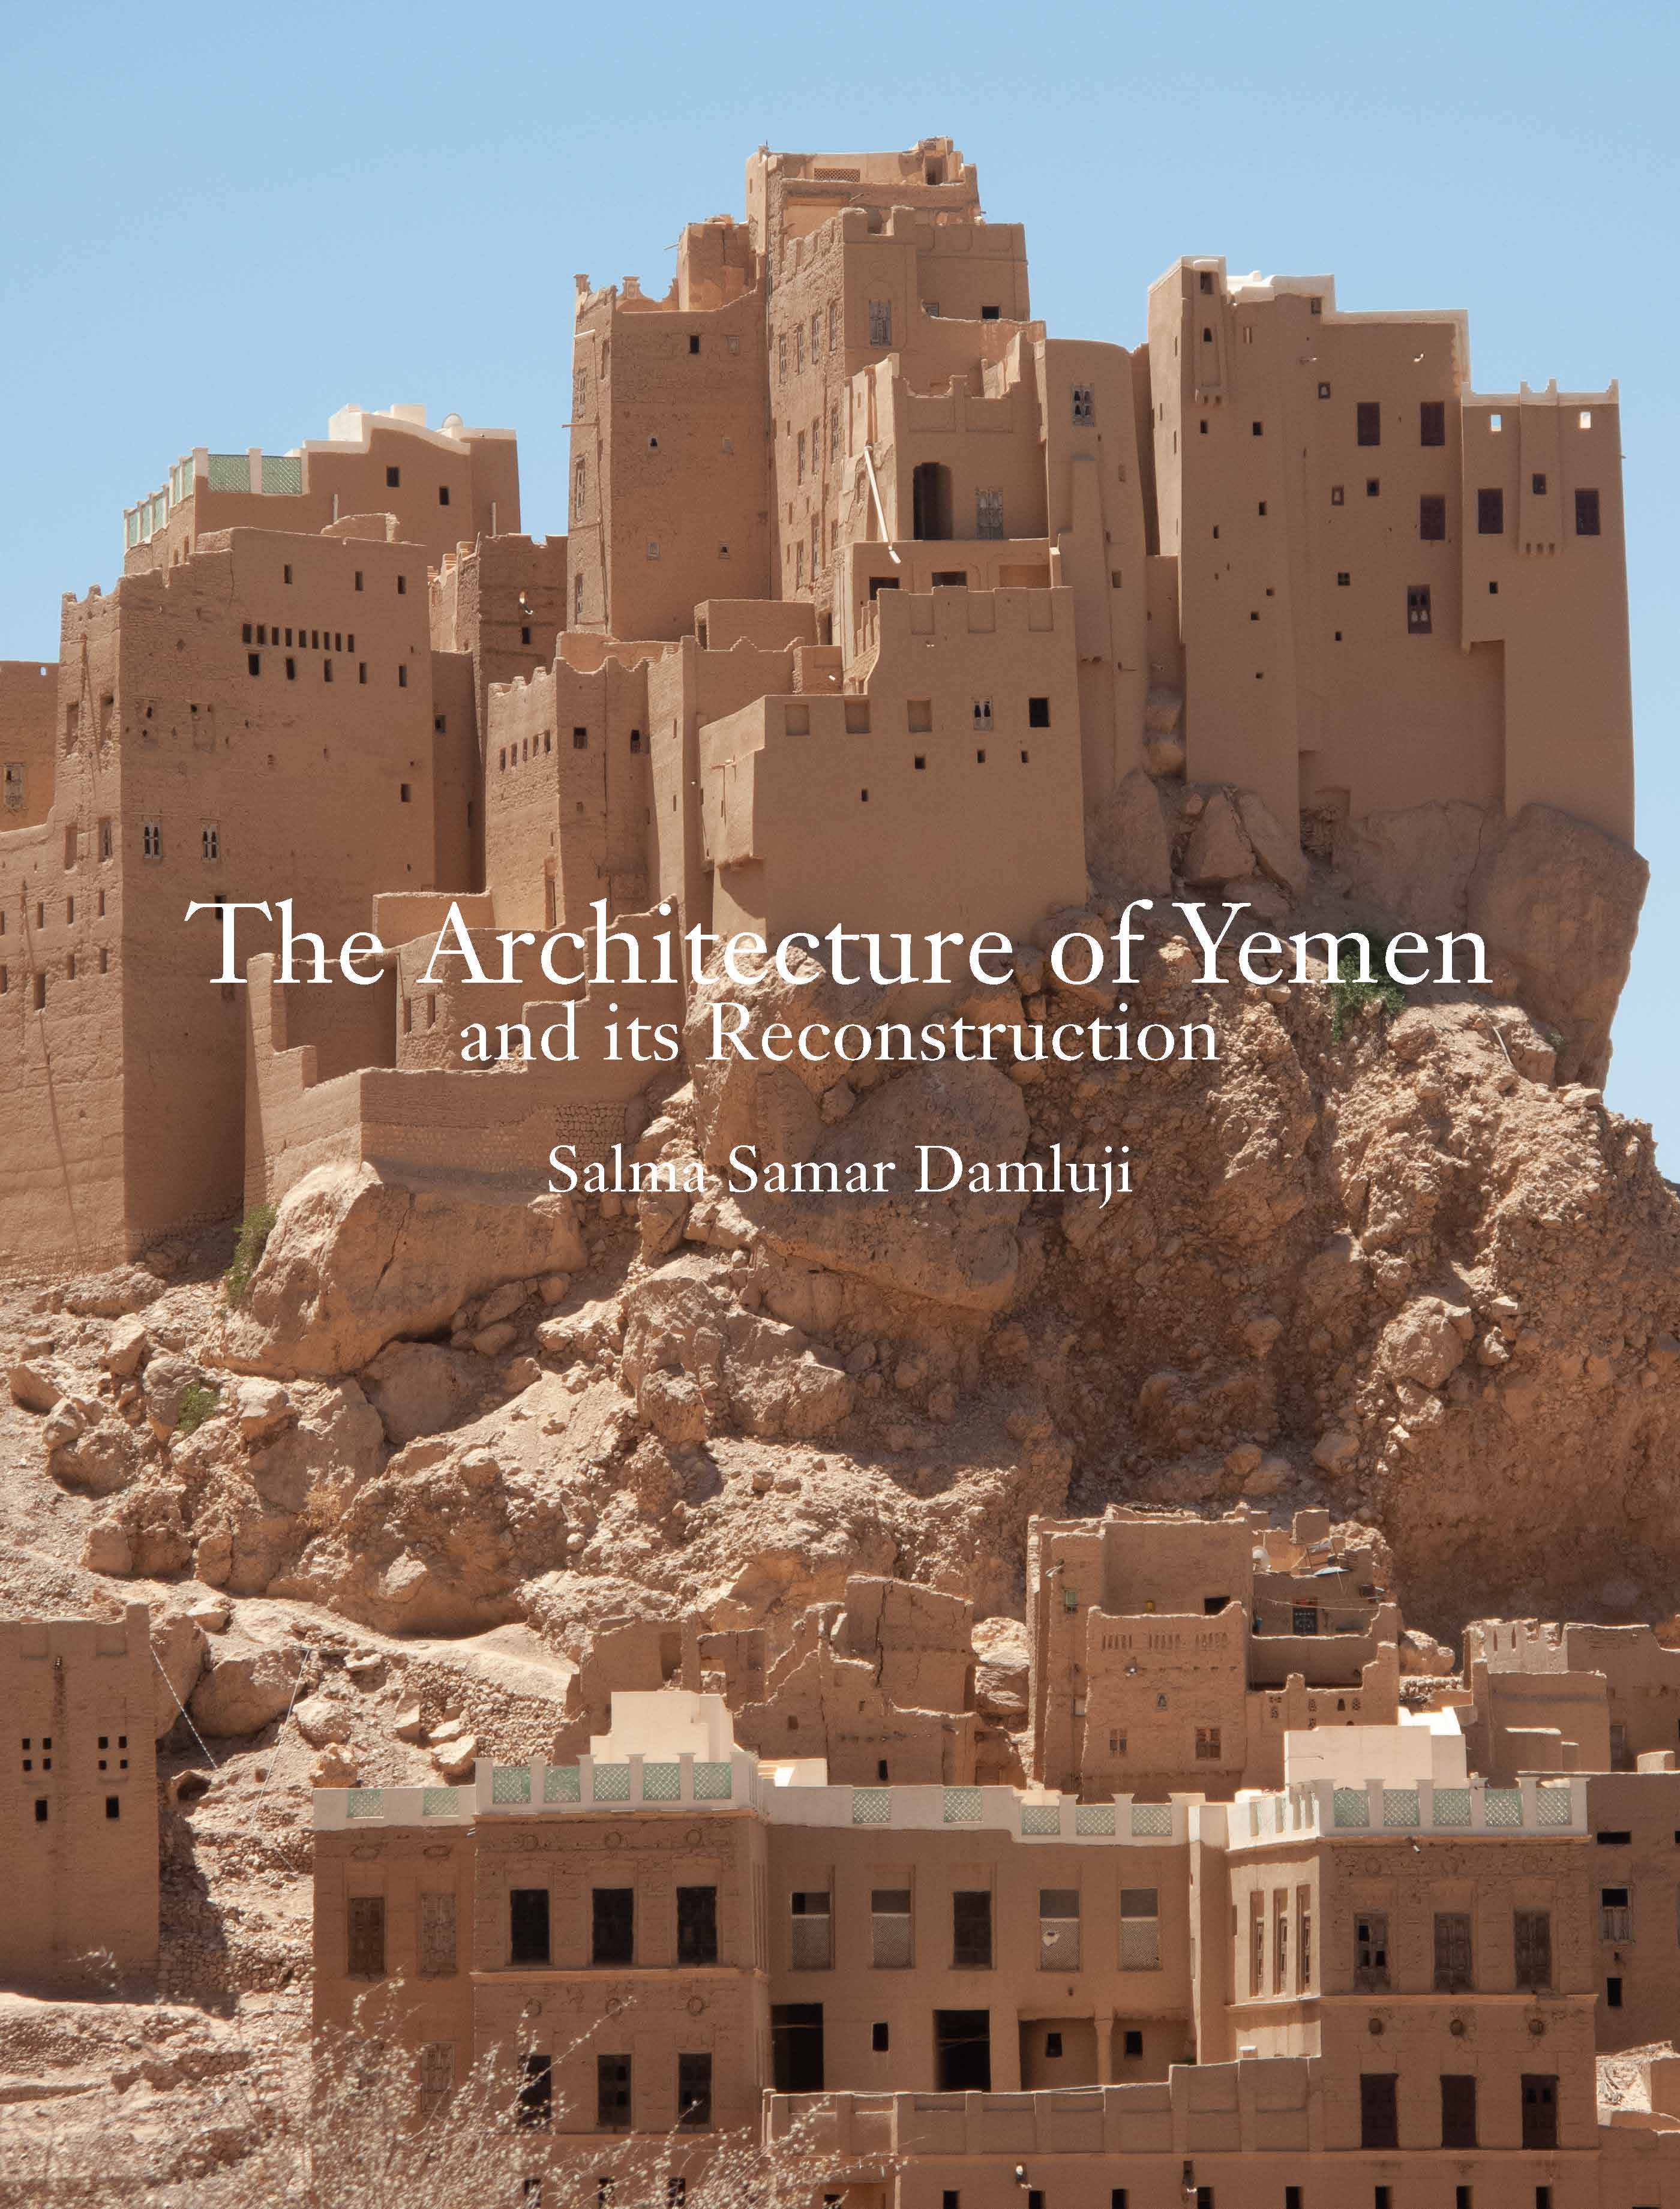 The Architecture of Yemen and its Reconstruction - Product Thumbnail